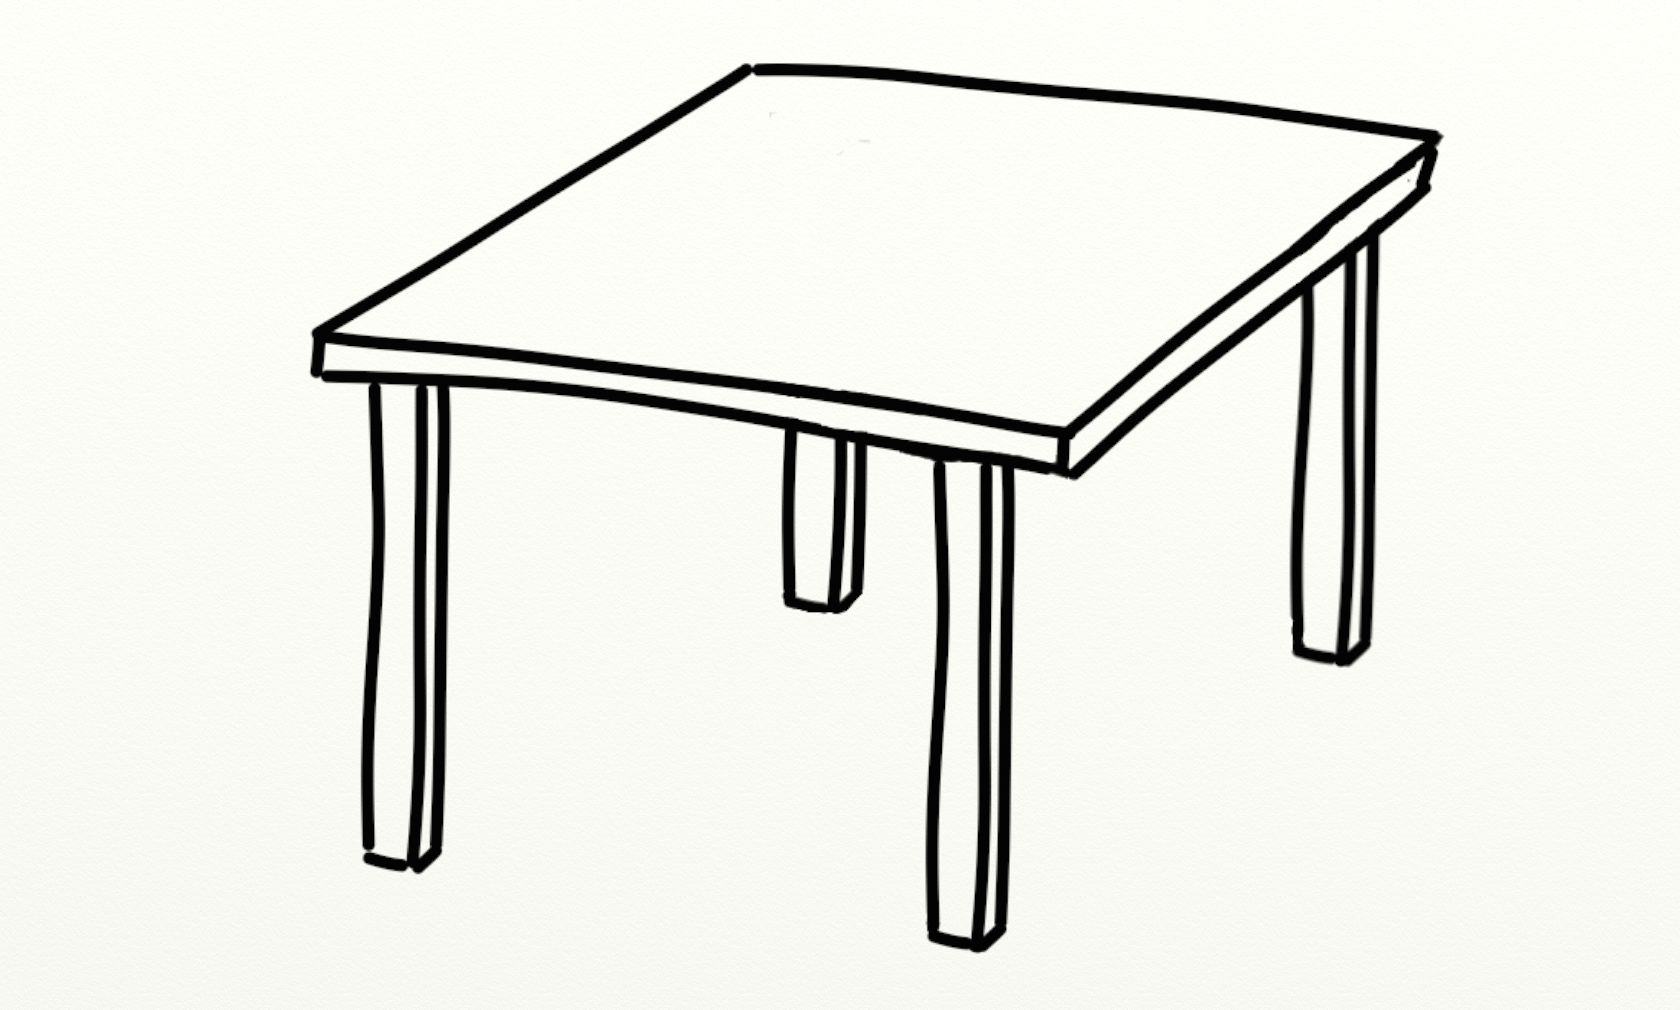 Chair and table in clipart black and white image black and white Chair Clipart Black And White | Free download best Chair Clipart ... image black and white